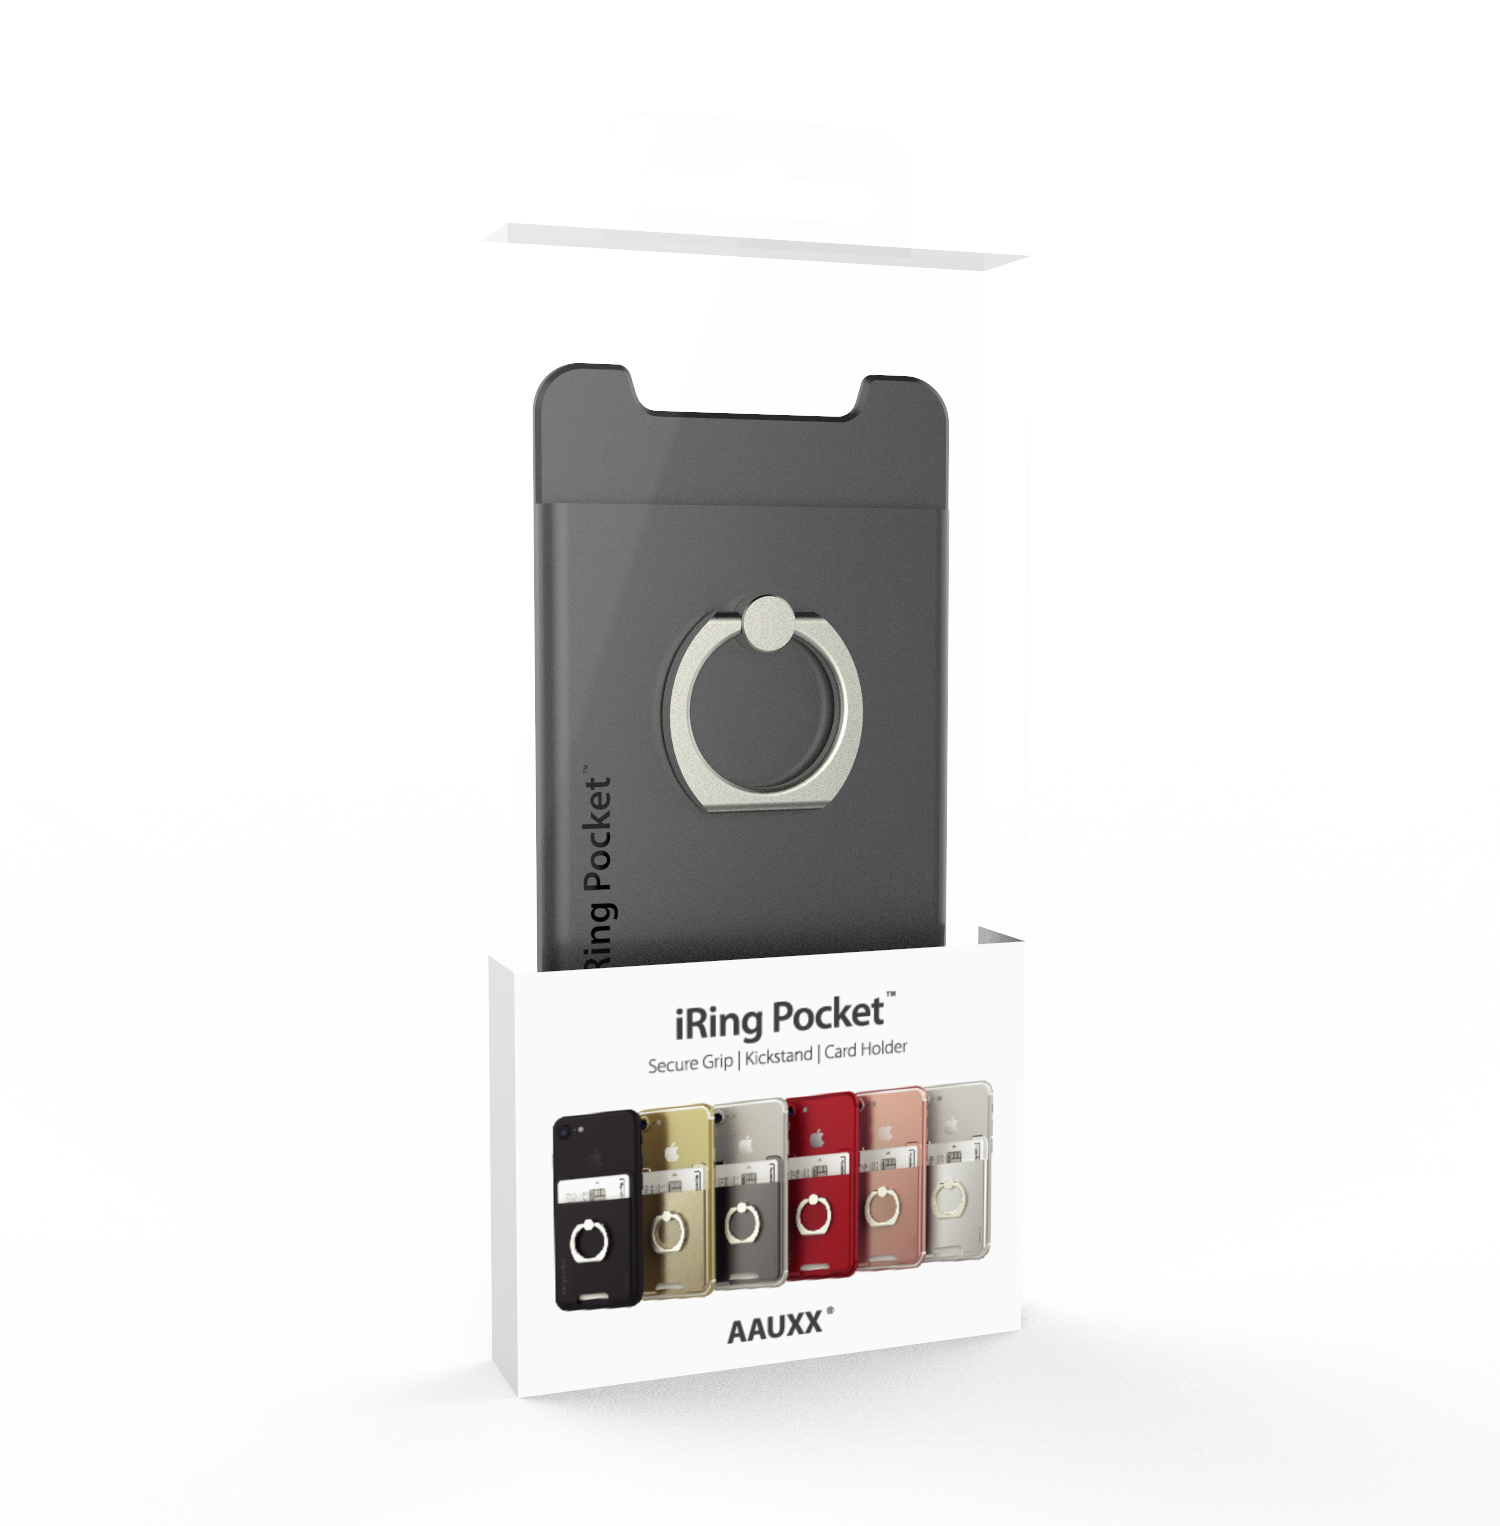 Iring pocket package gray